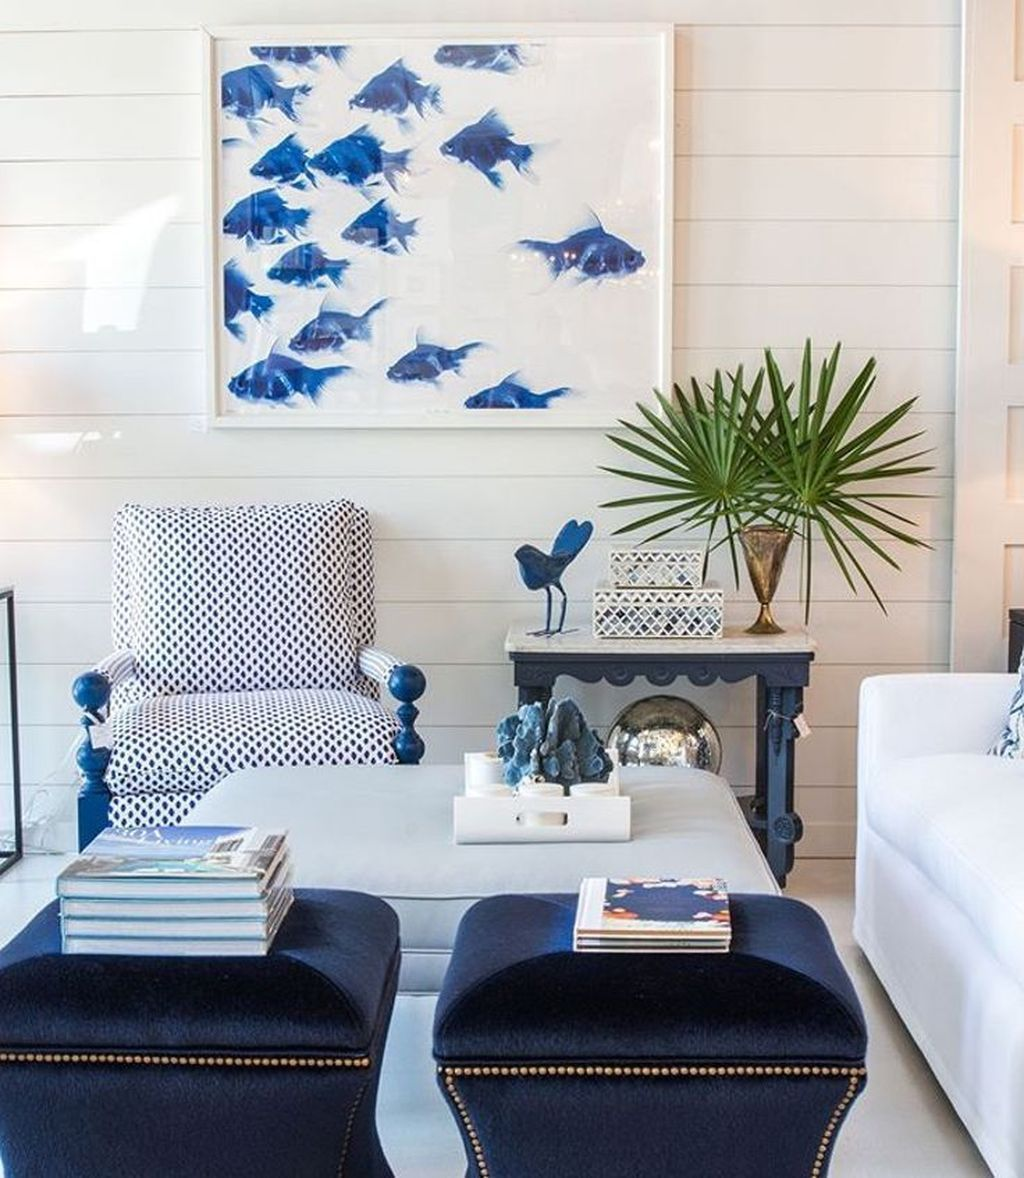 38 Amazing Summer House Interior Design Ideas With Beach Theme Summer House Interiors Coastal Decorating Living Room Blue Decor